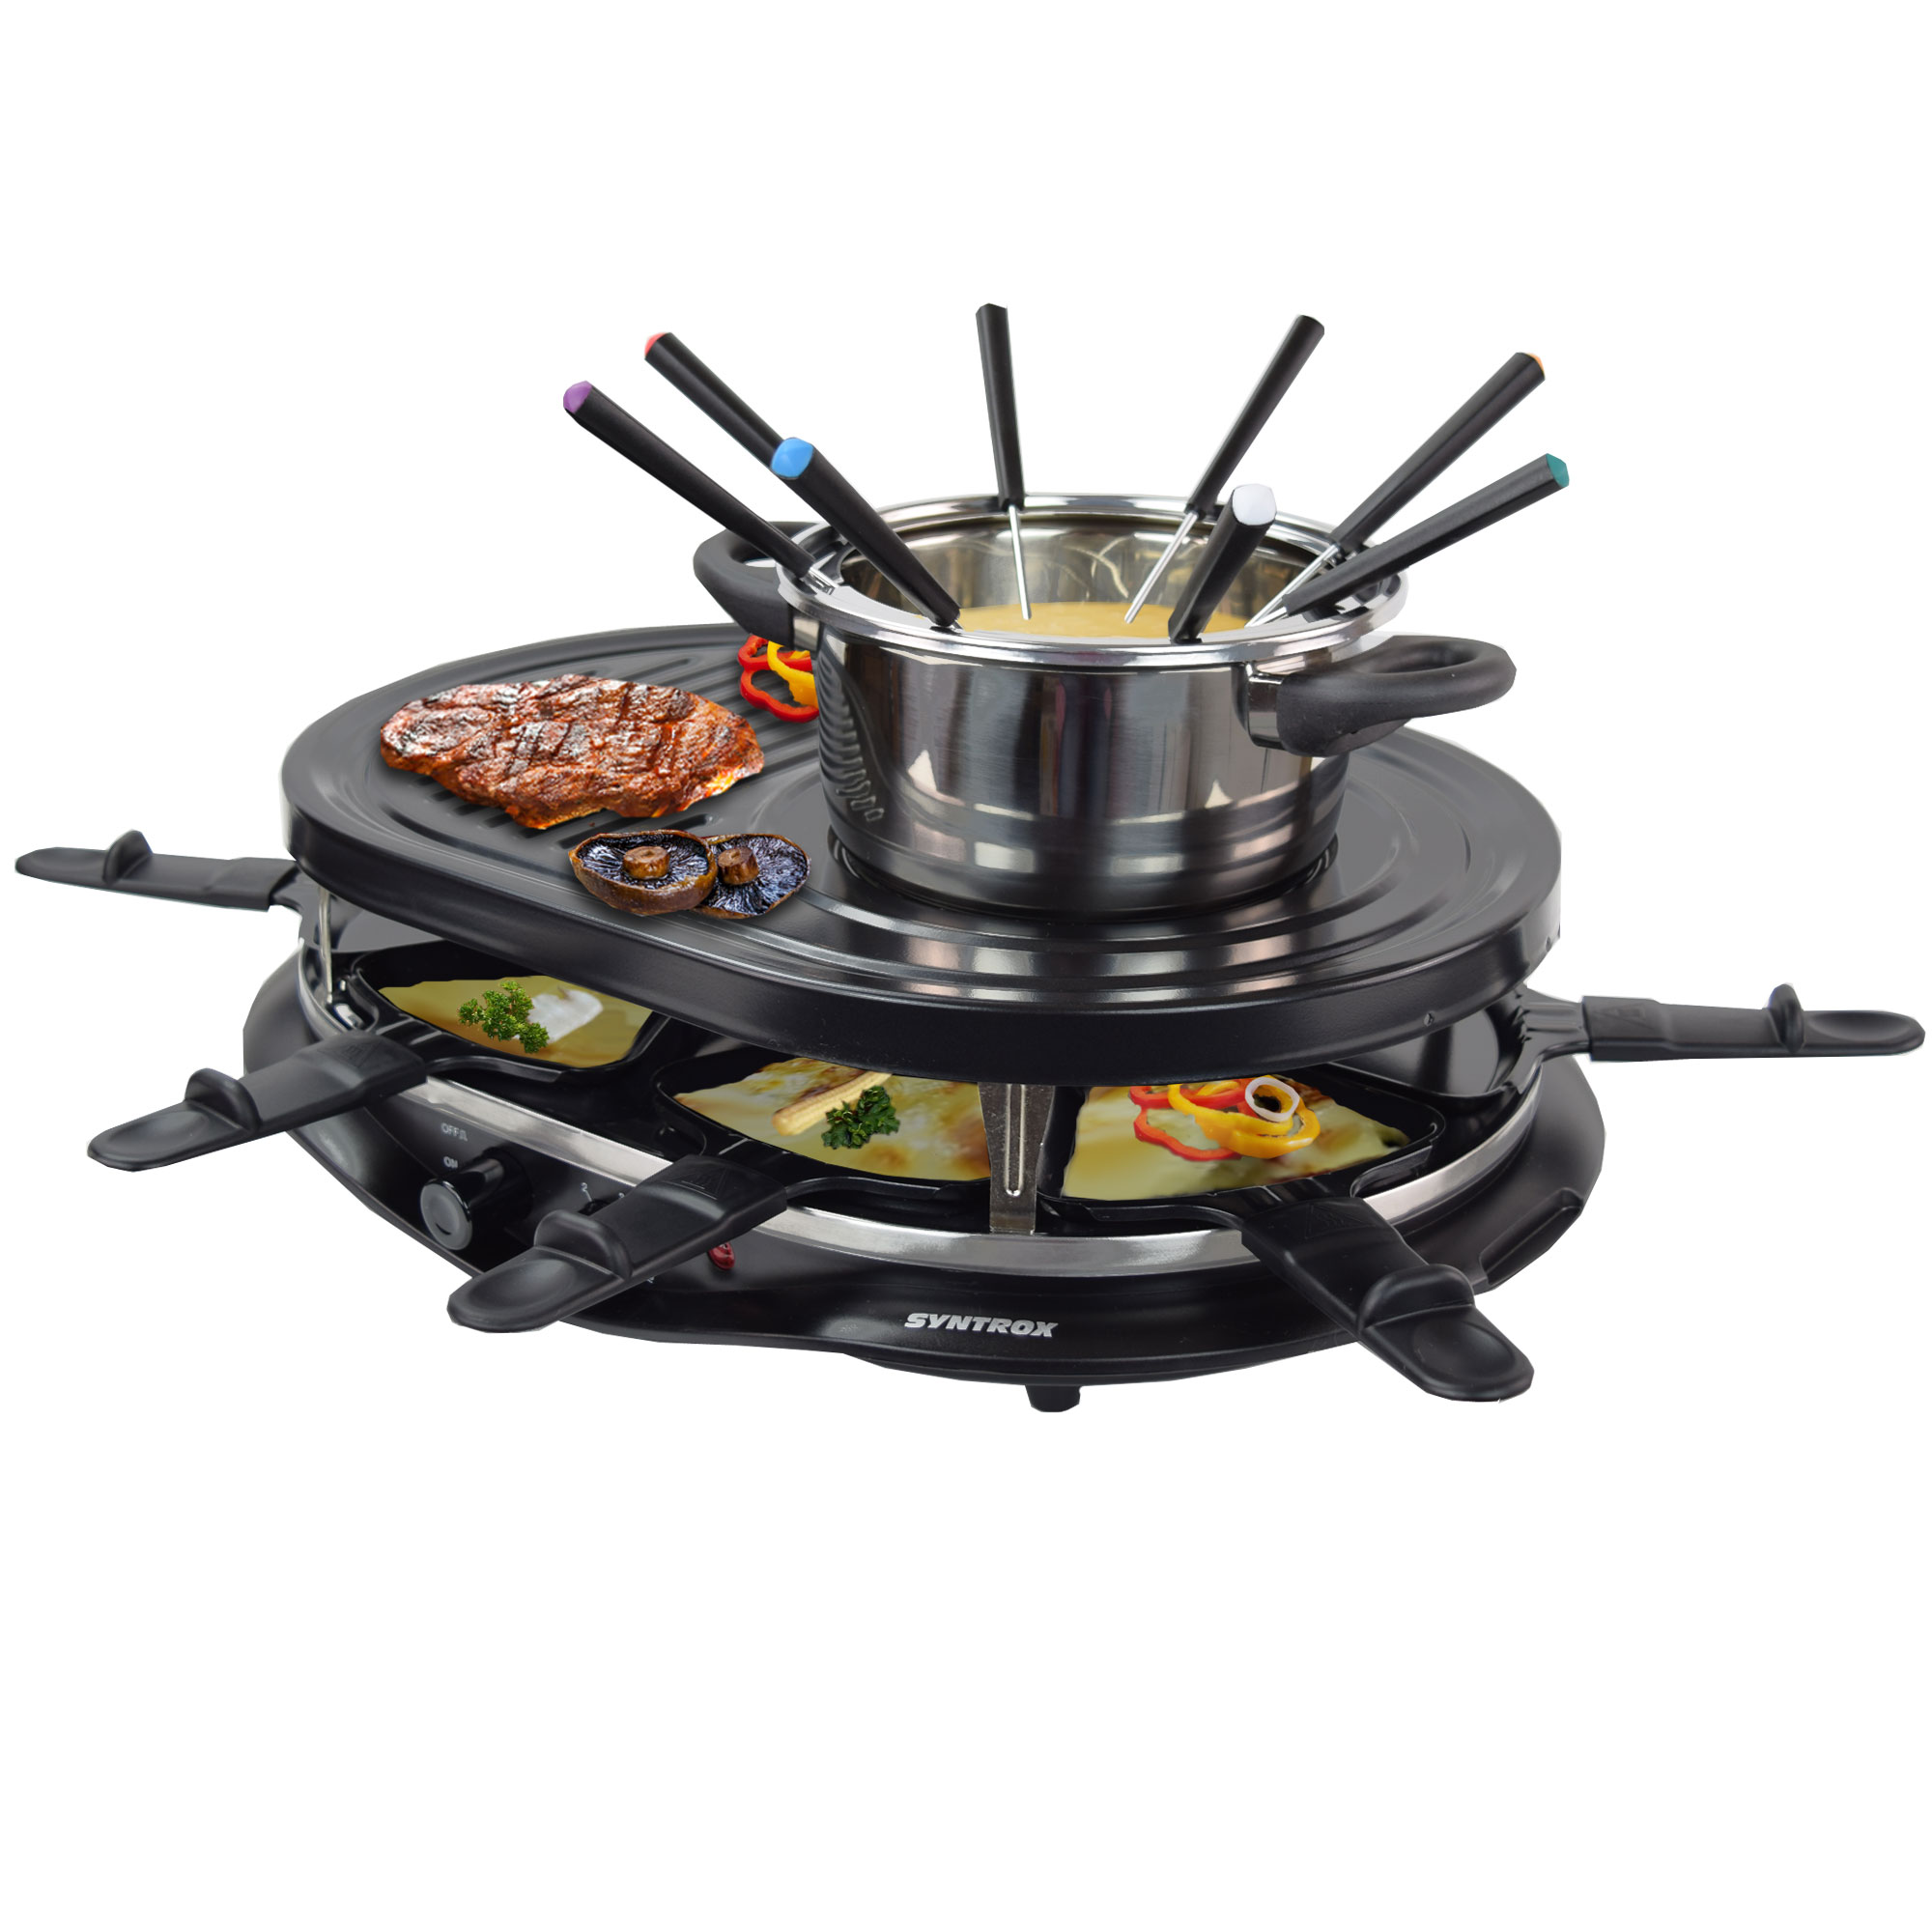 4 in 1 raclette grill heisser stein fondue f r 8. Black Bedroom Furniture Sets. Home Design Ideas